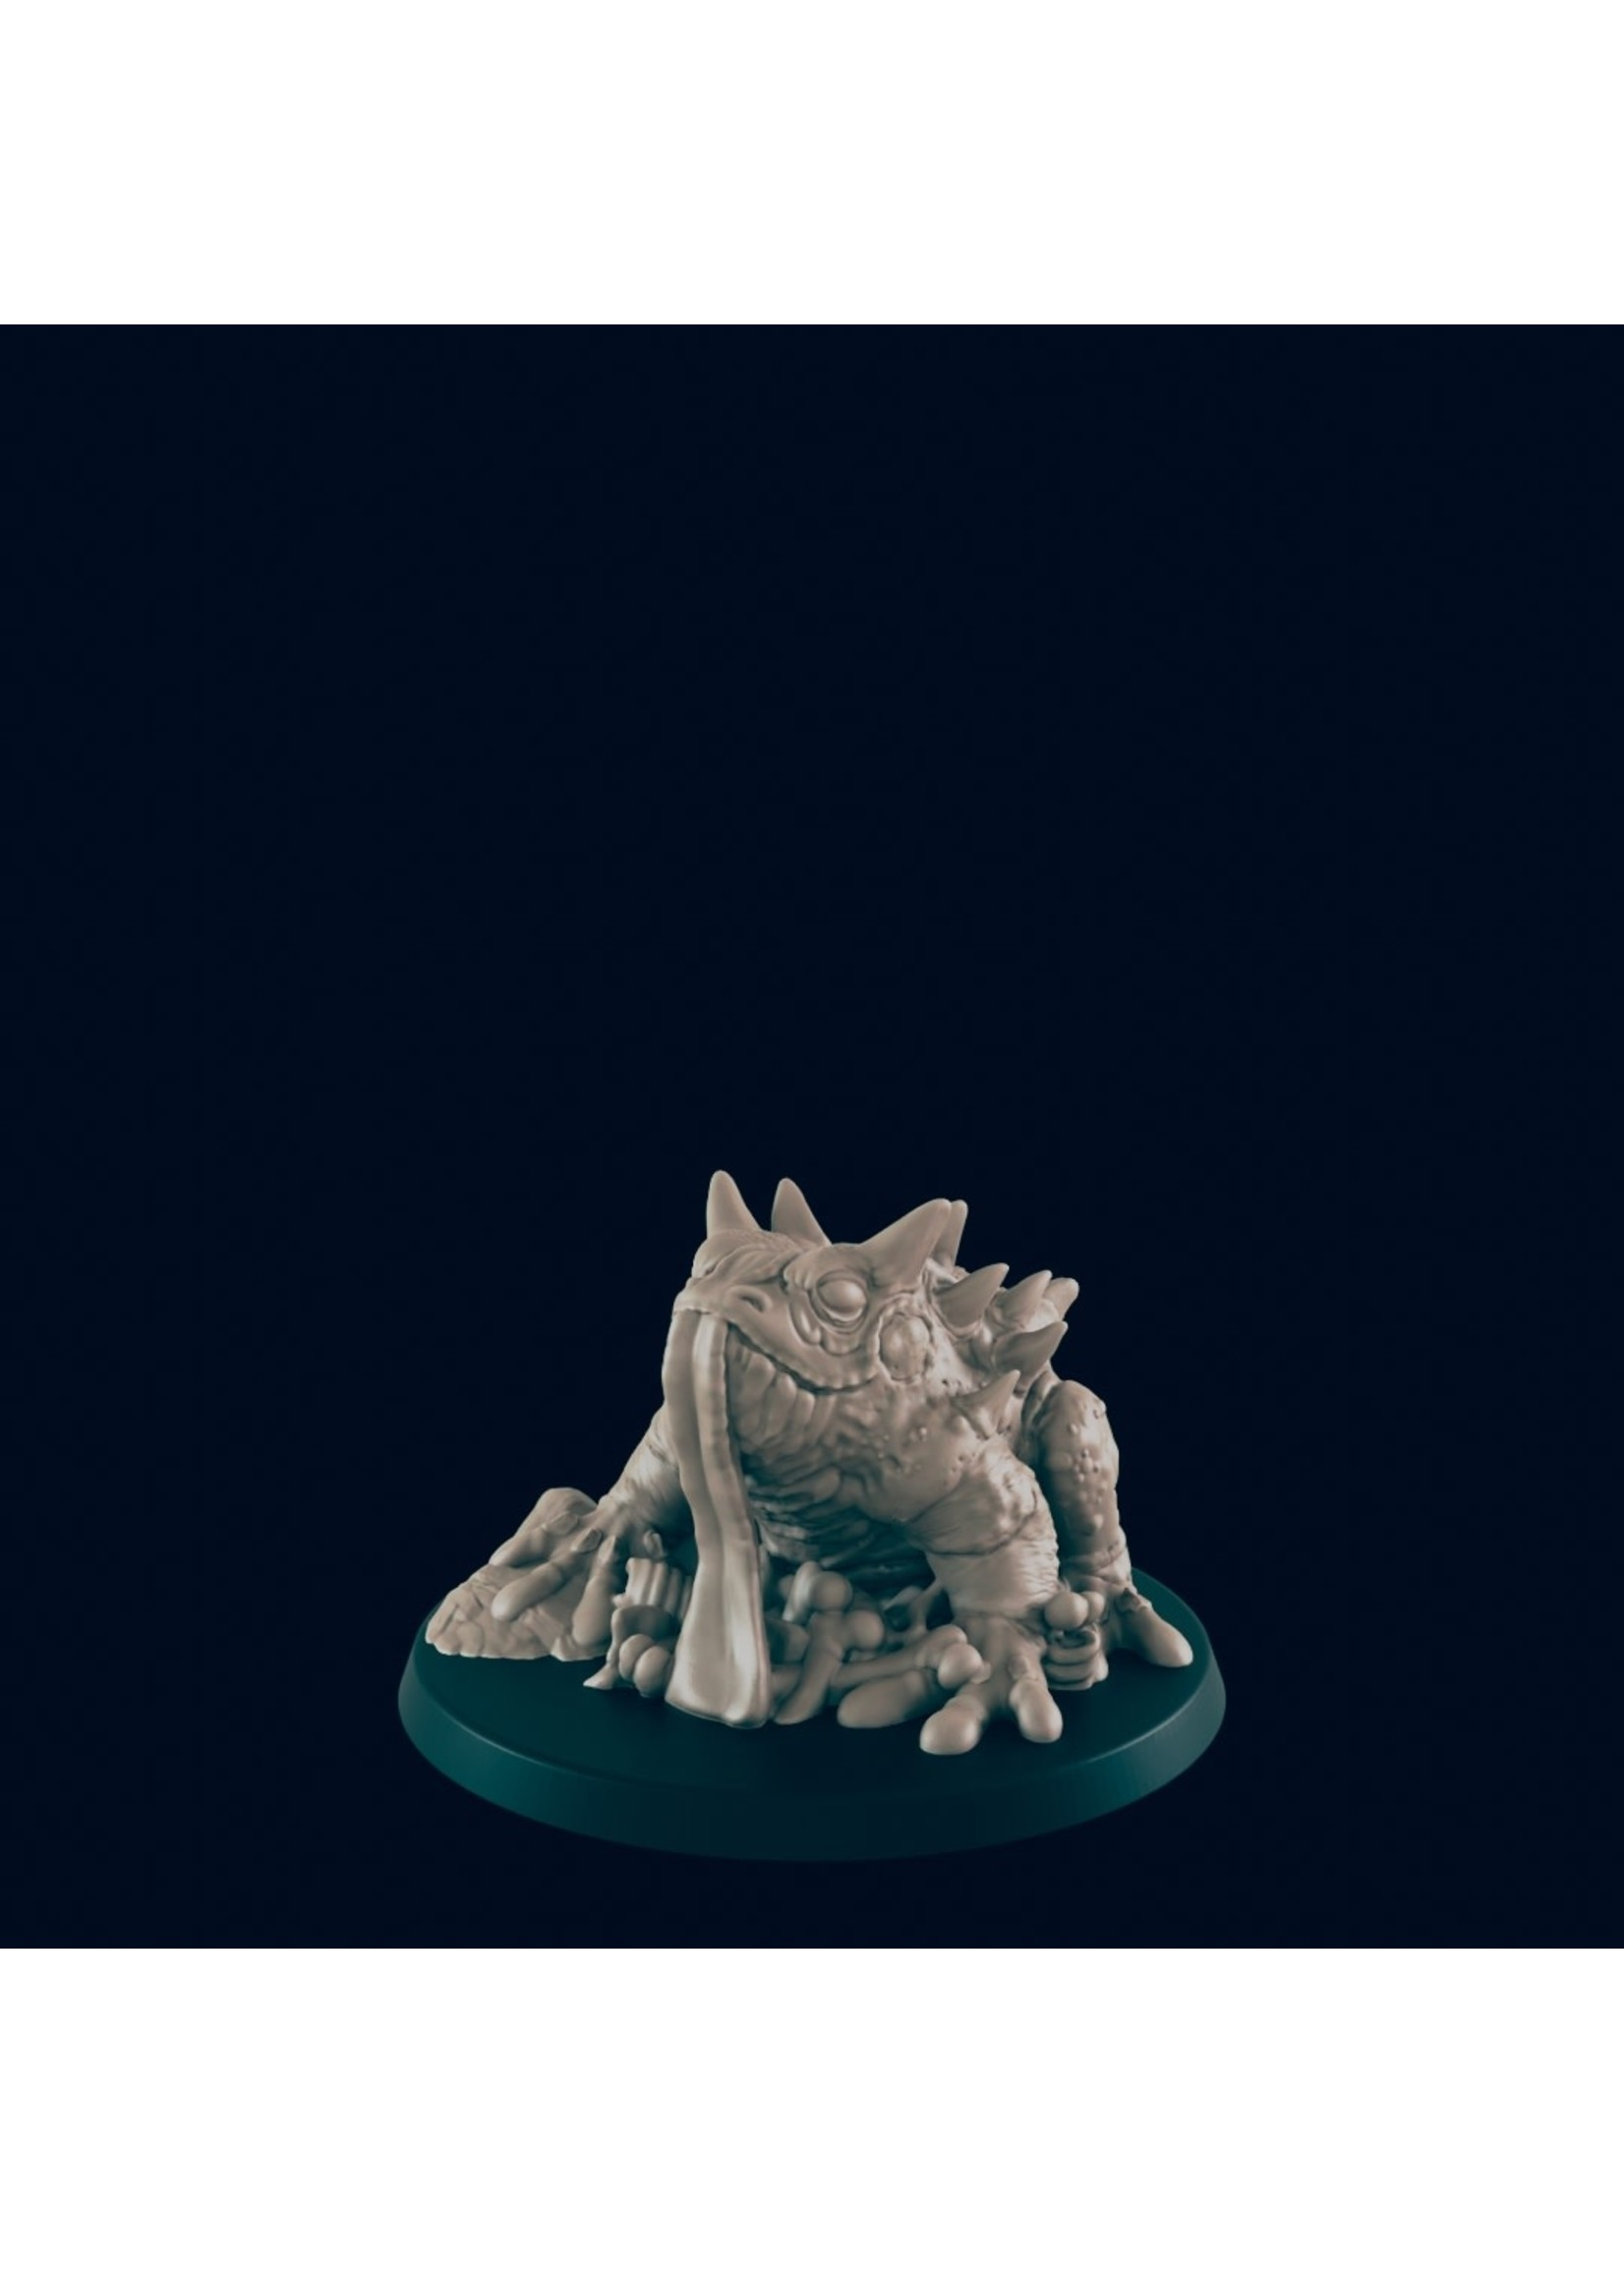 3D Printed Miniature - Giant Toad - Dungeons & Dragons - Beasts and Baddies KS